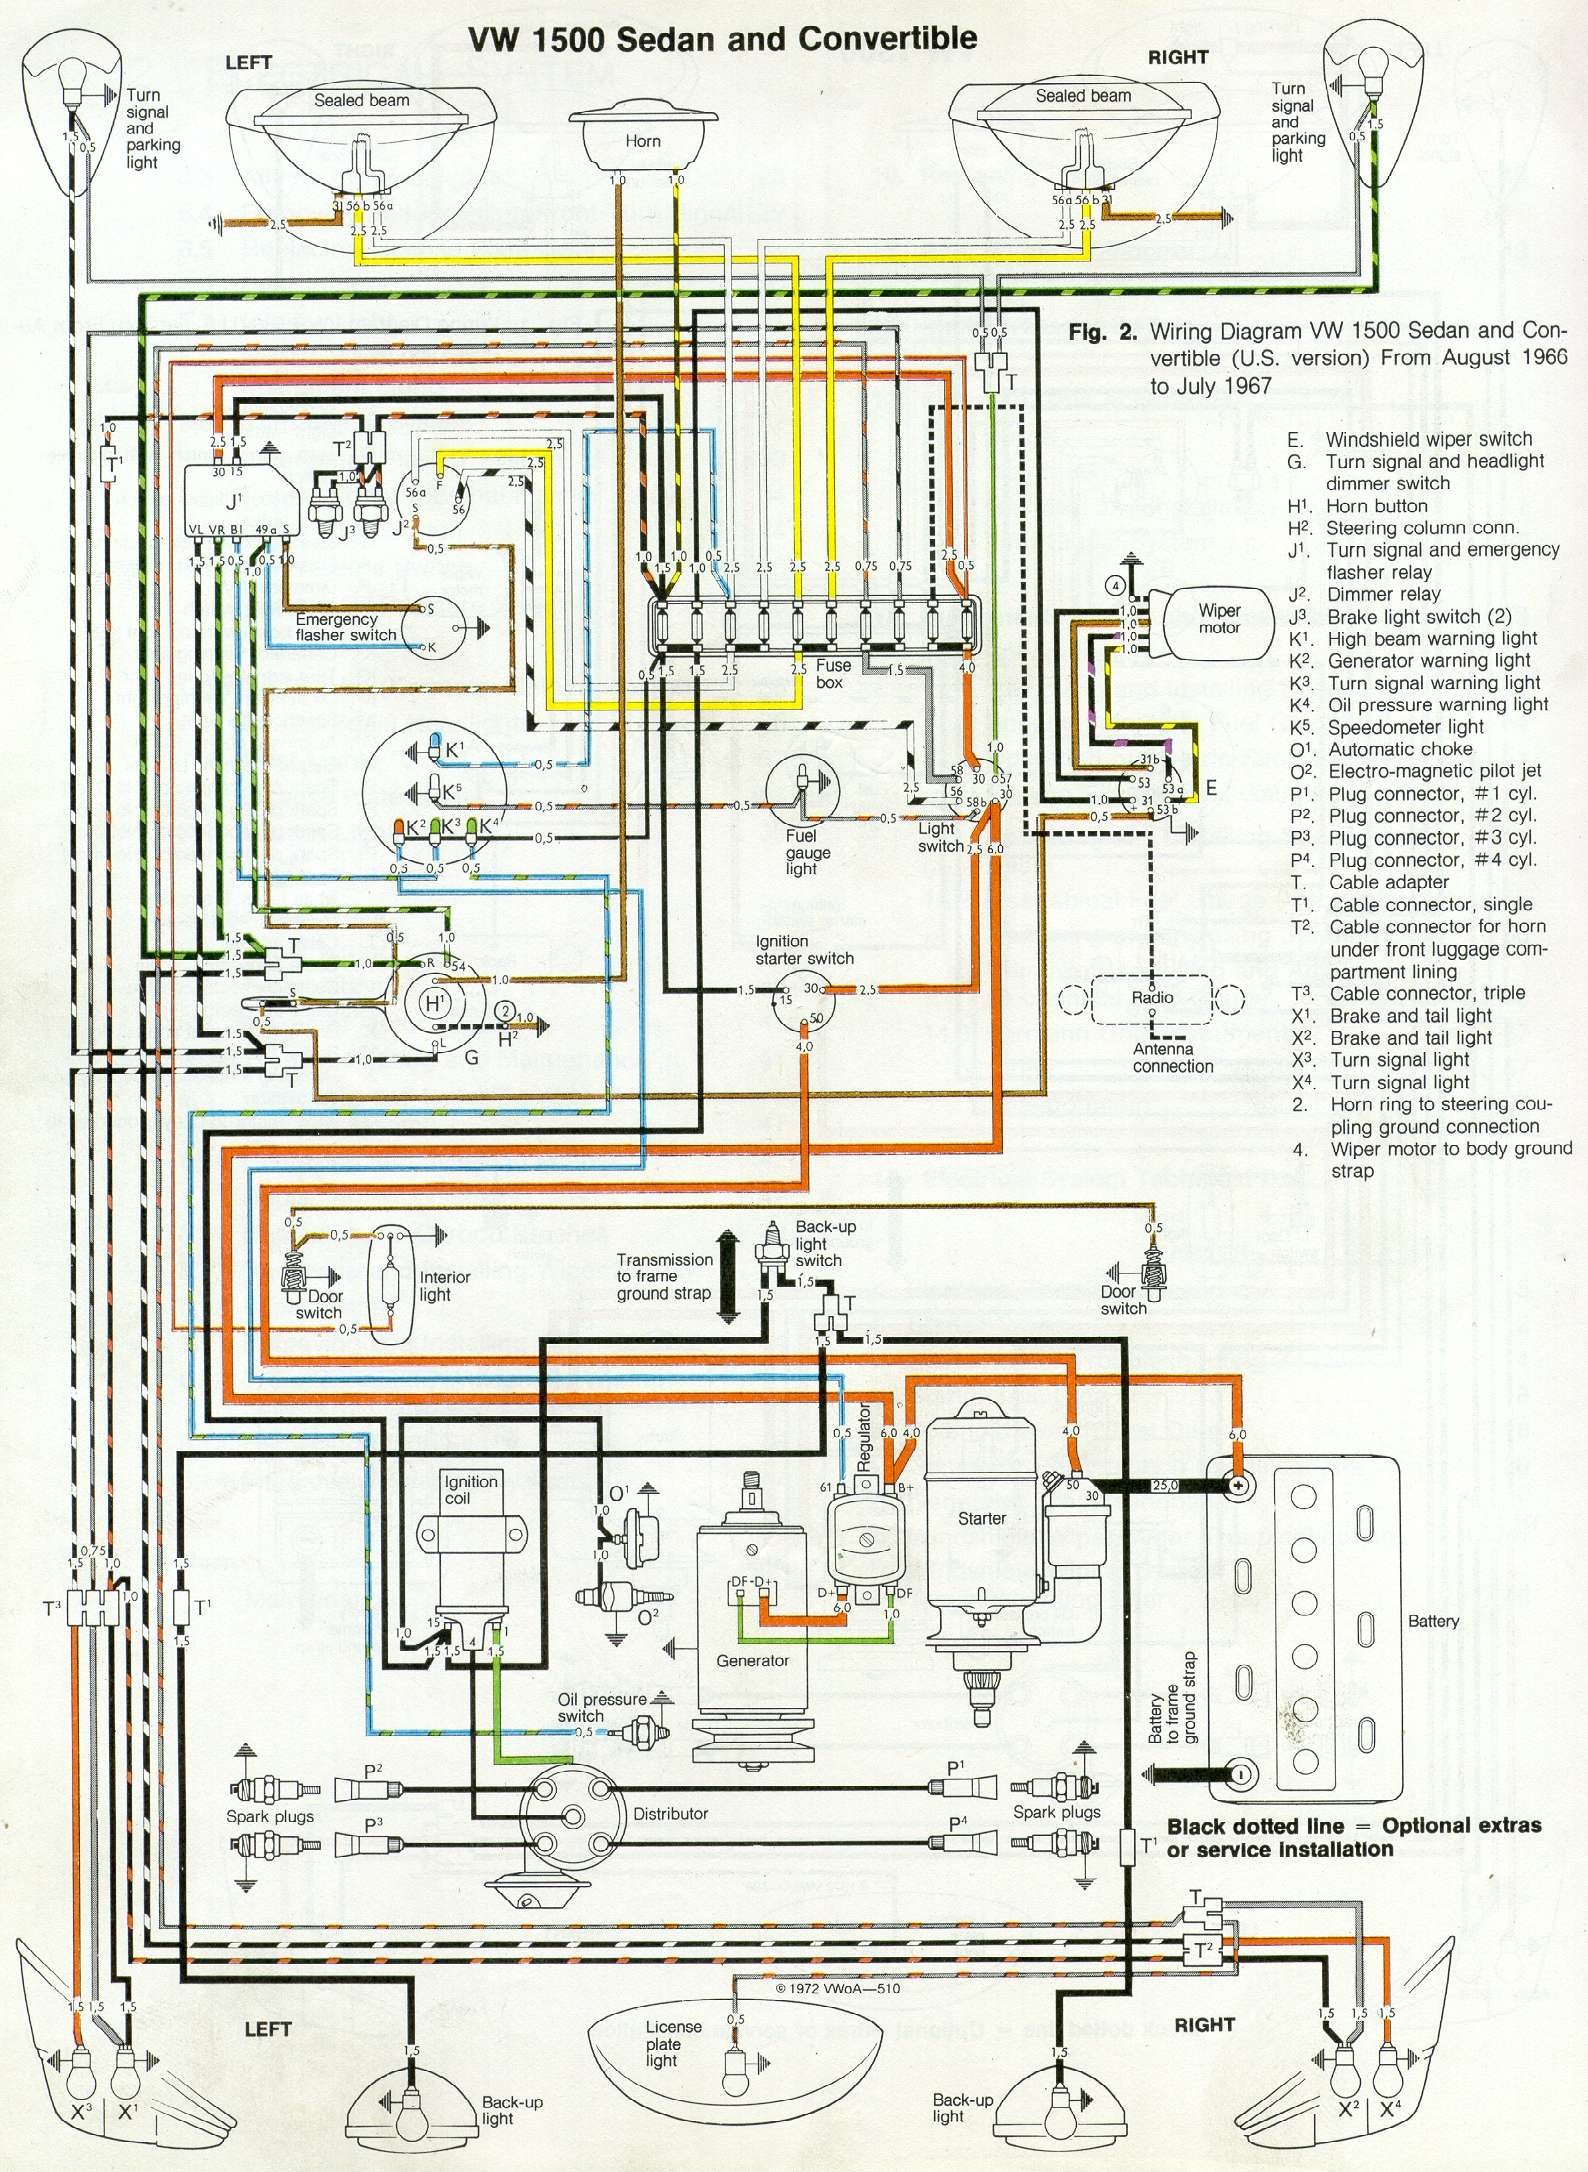 VW bug_1967 other diagrams 1999 vw beetle wiring diagram at reclaimingppi.co